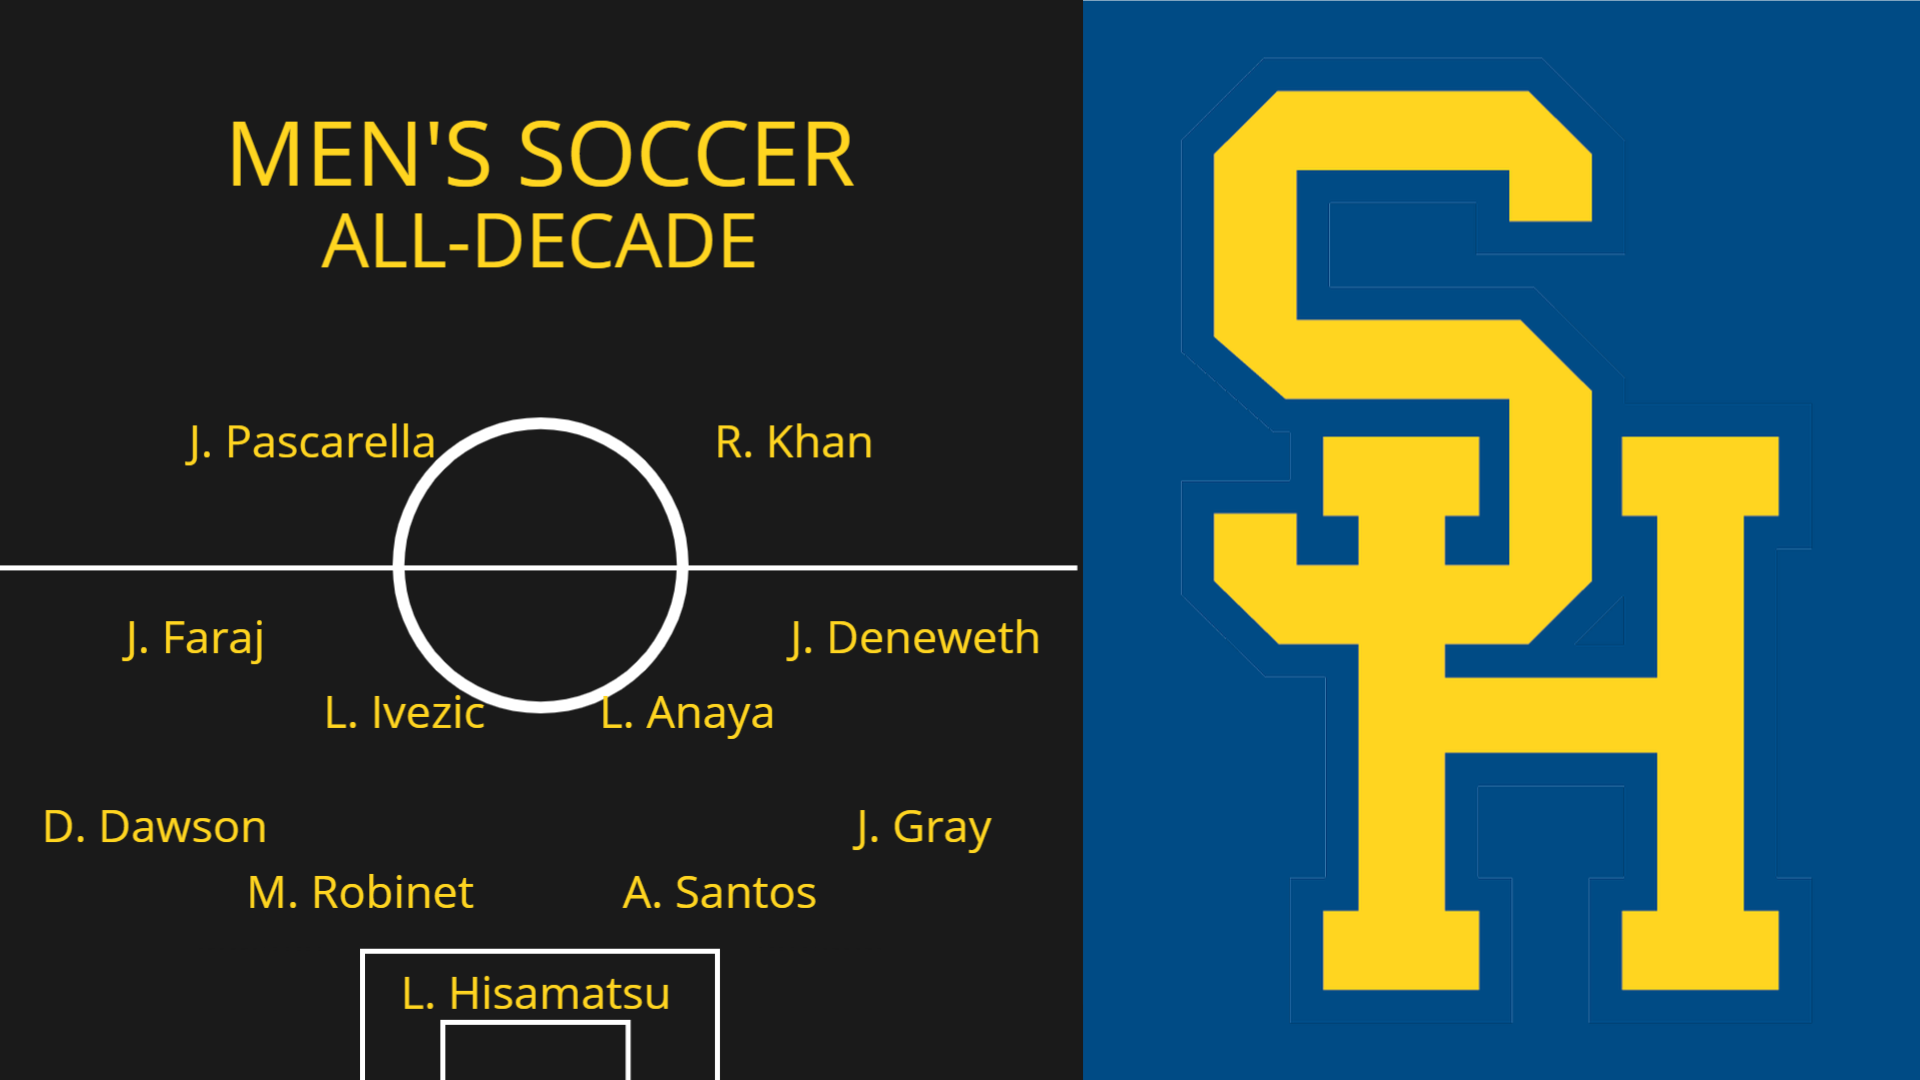 Siena Heights All-Decade Series: Men's Soccer